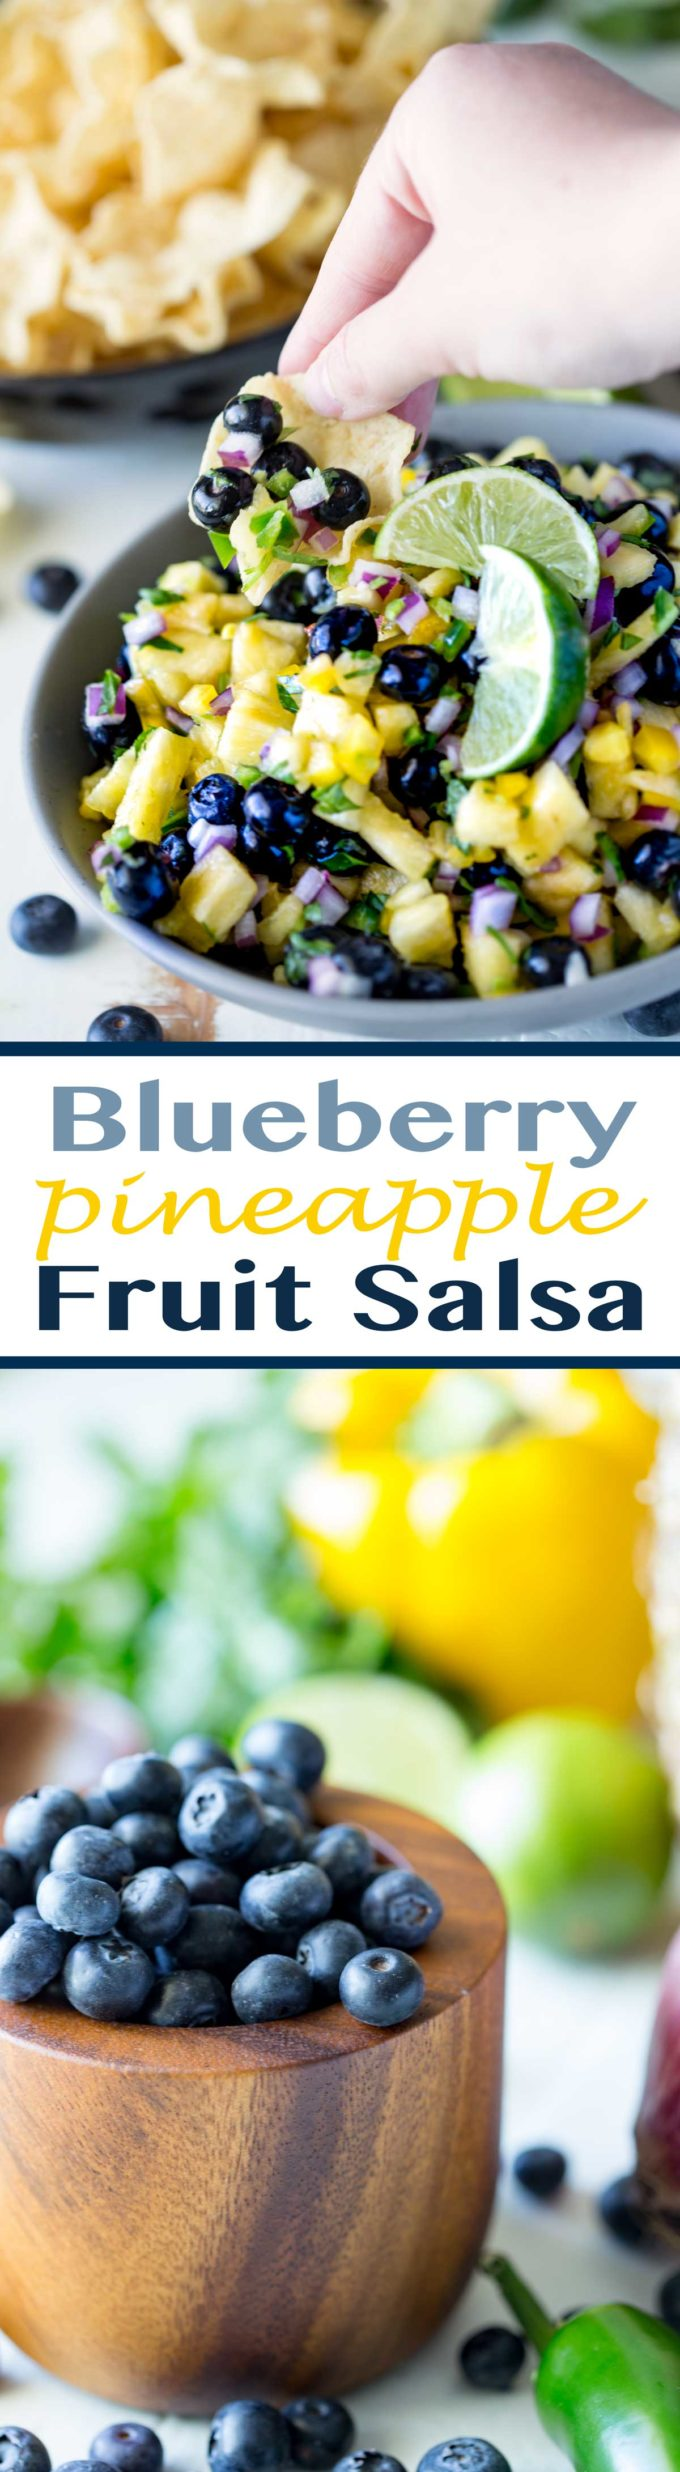 Blueberry Pineapple Fruit Salsa is the perfect combo of sweet and heat! Makes a great appetizer or topper for fish